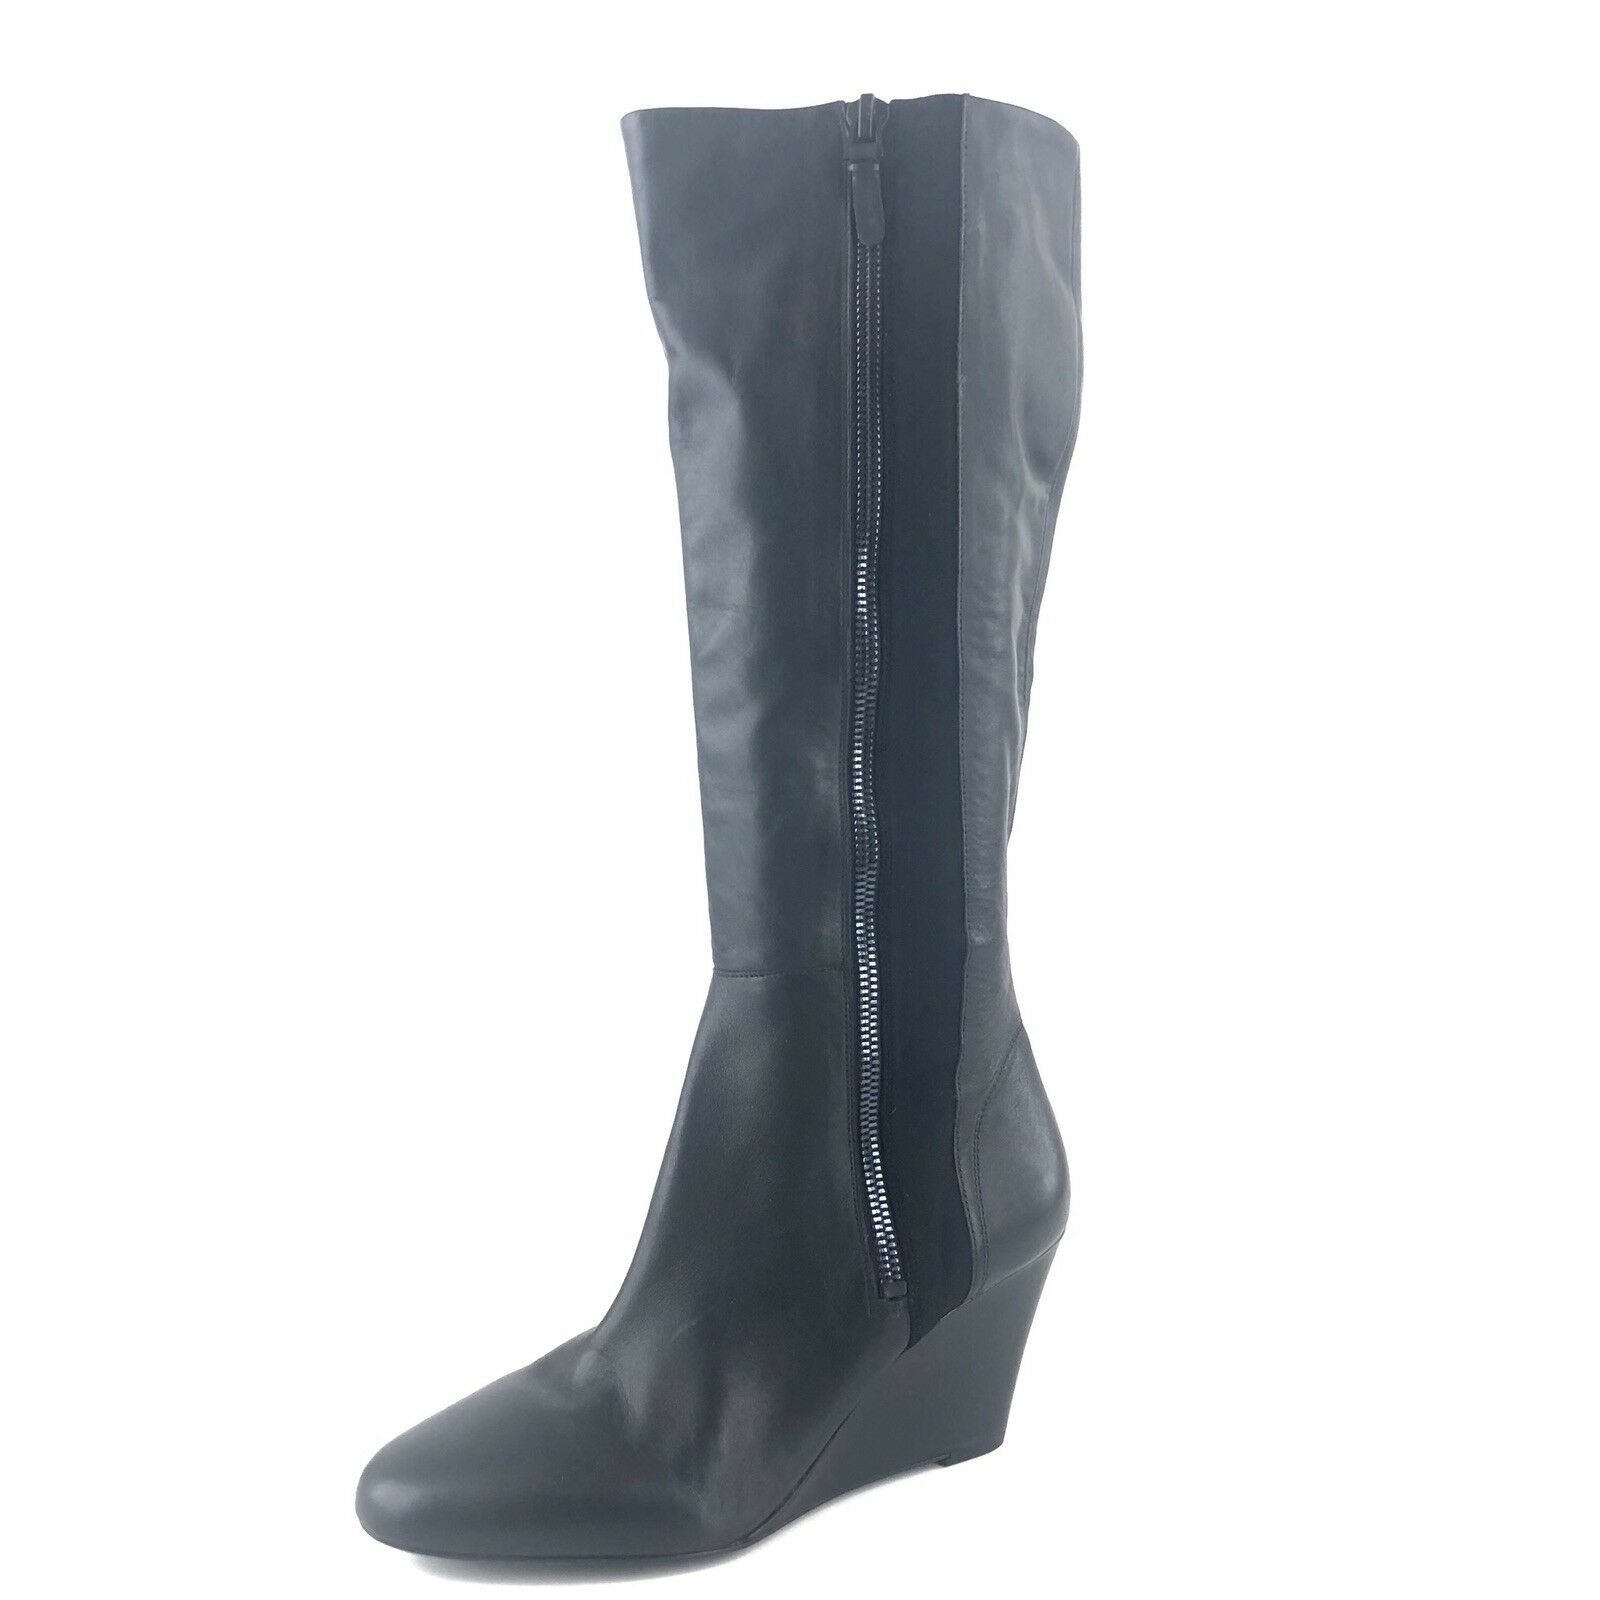 Via Spiga Alicia Womens Black Leather Zip Up Wedge Knee High Boots Size 10.5 M